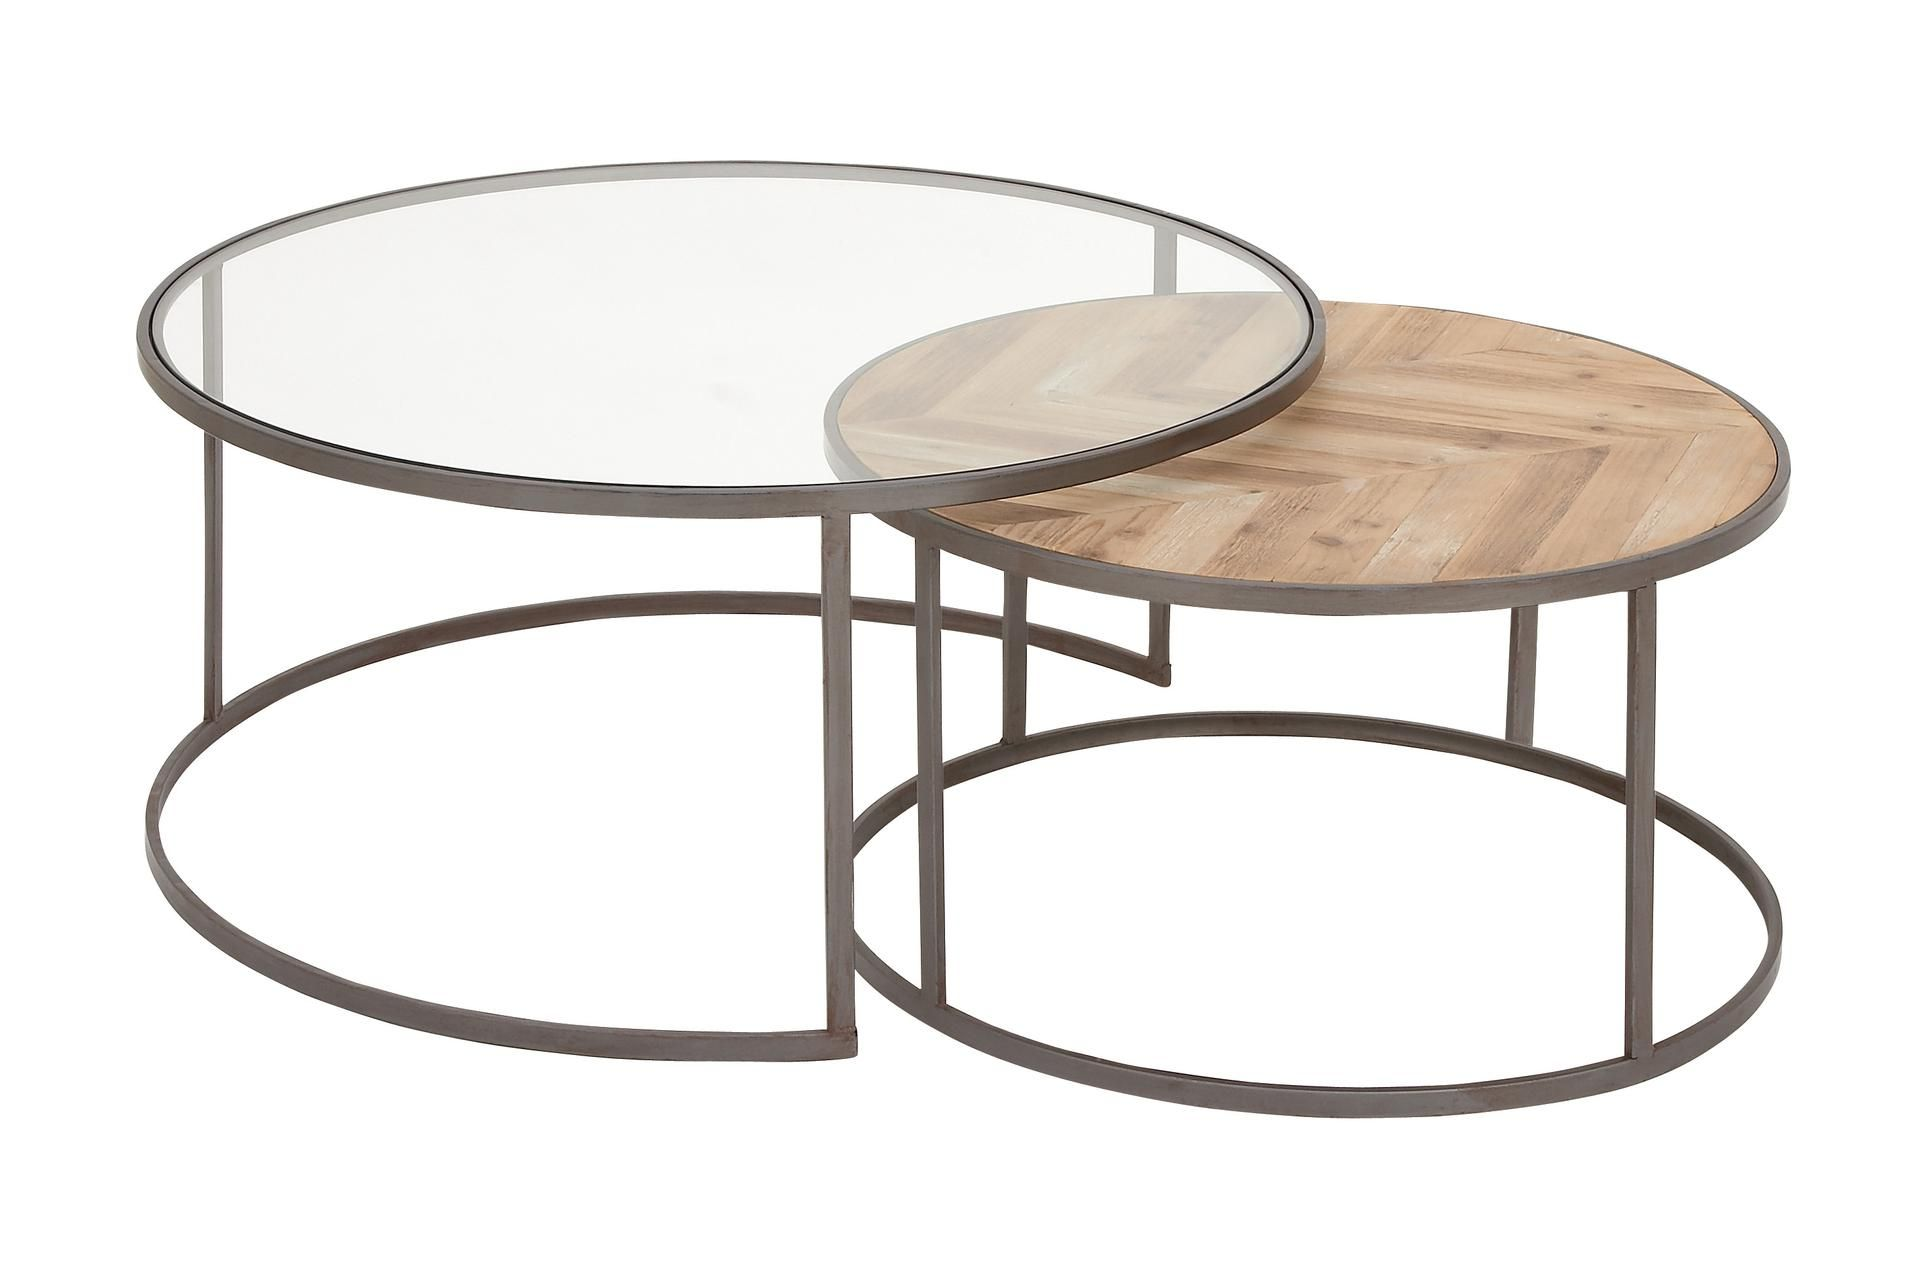 2 Piece Glass And Wood Nesting Coffee Table In 2020 Nesting Coffee Tables Round Nesting Coffee Tables Round Coffee Table Sets